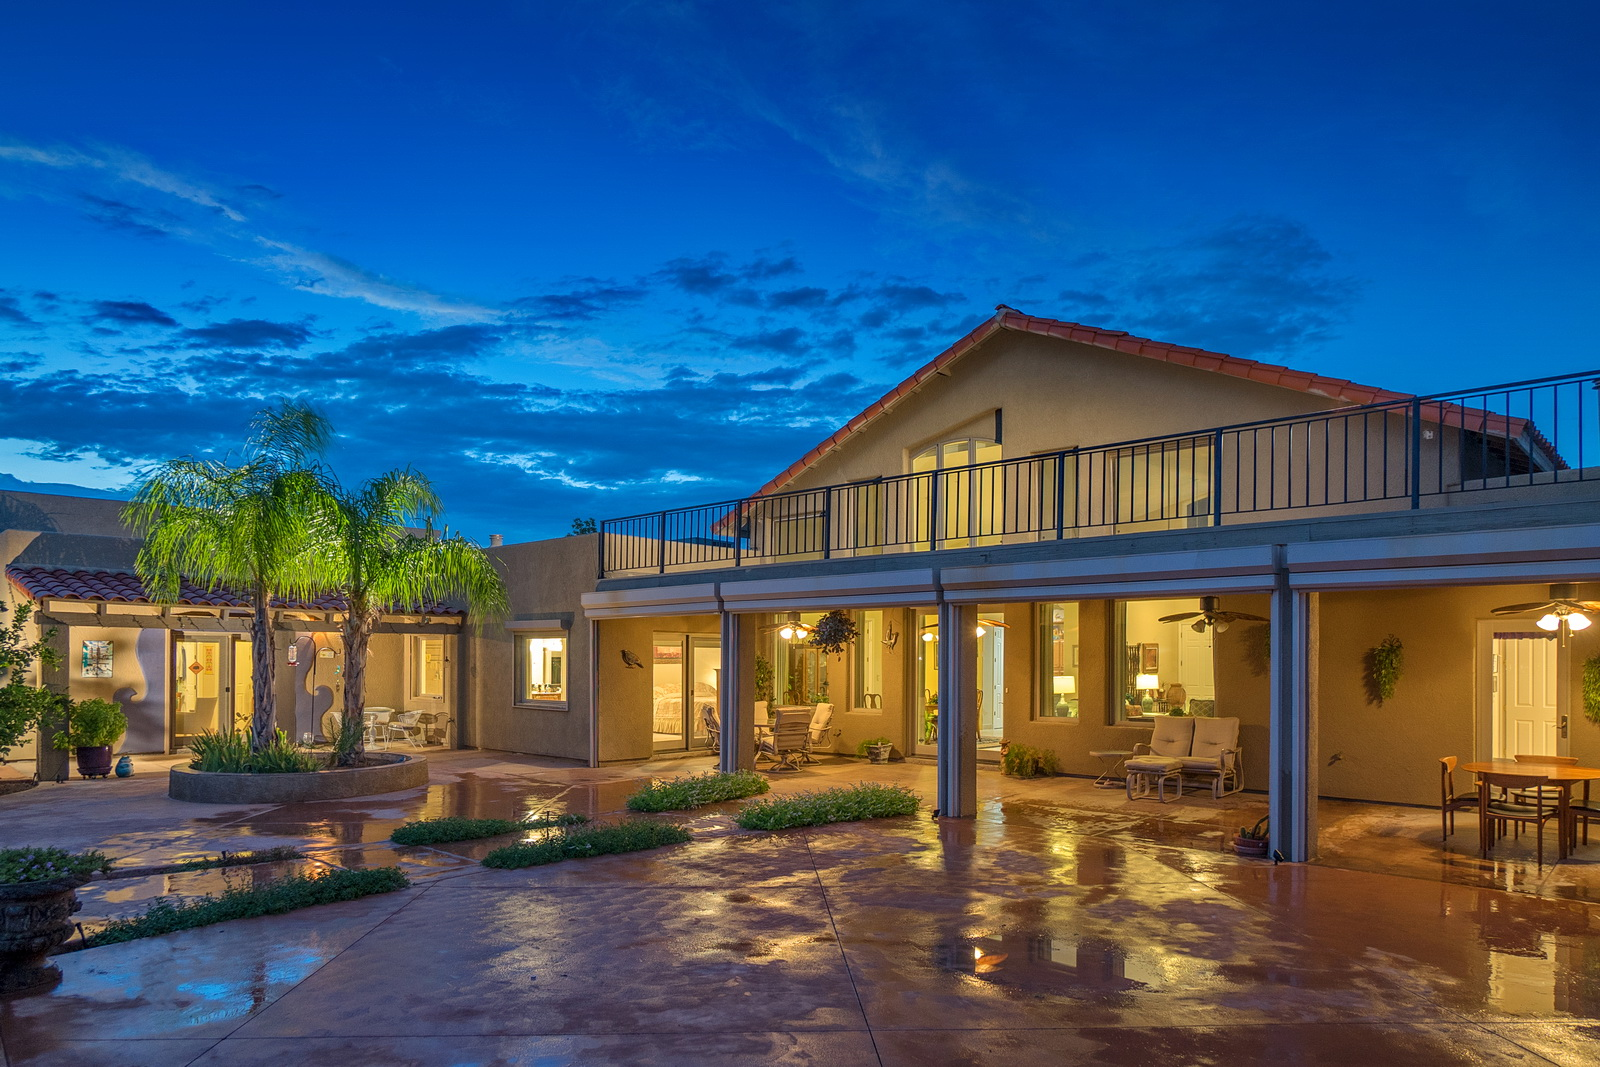 Easily Search Tucson Homes For Sale Tucson Real Estate And Tucson Homes For Rent Tucson Real